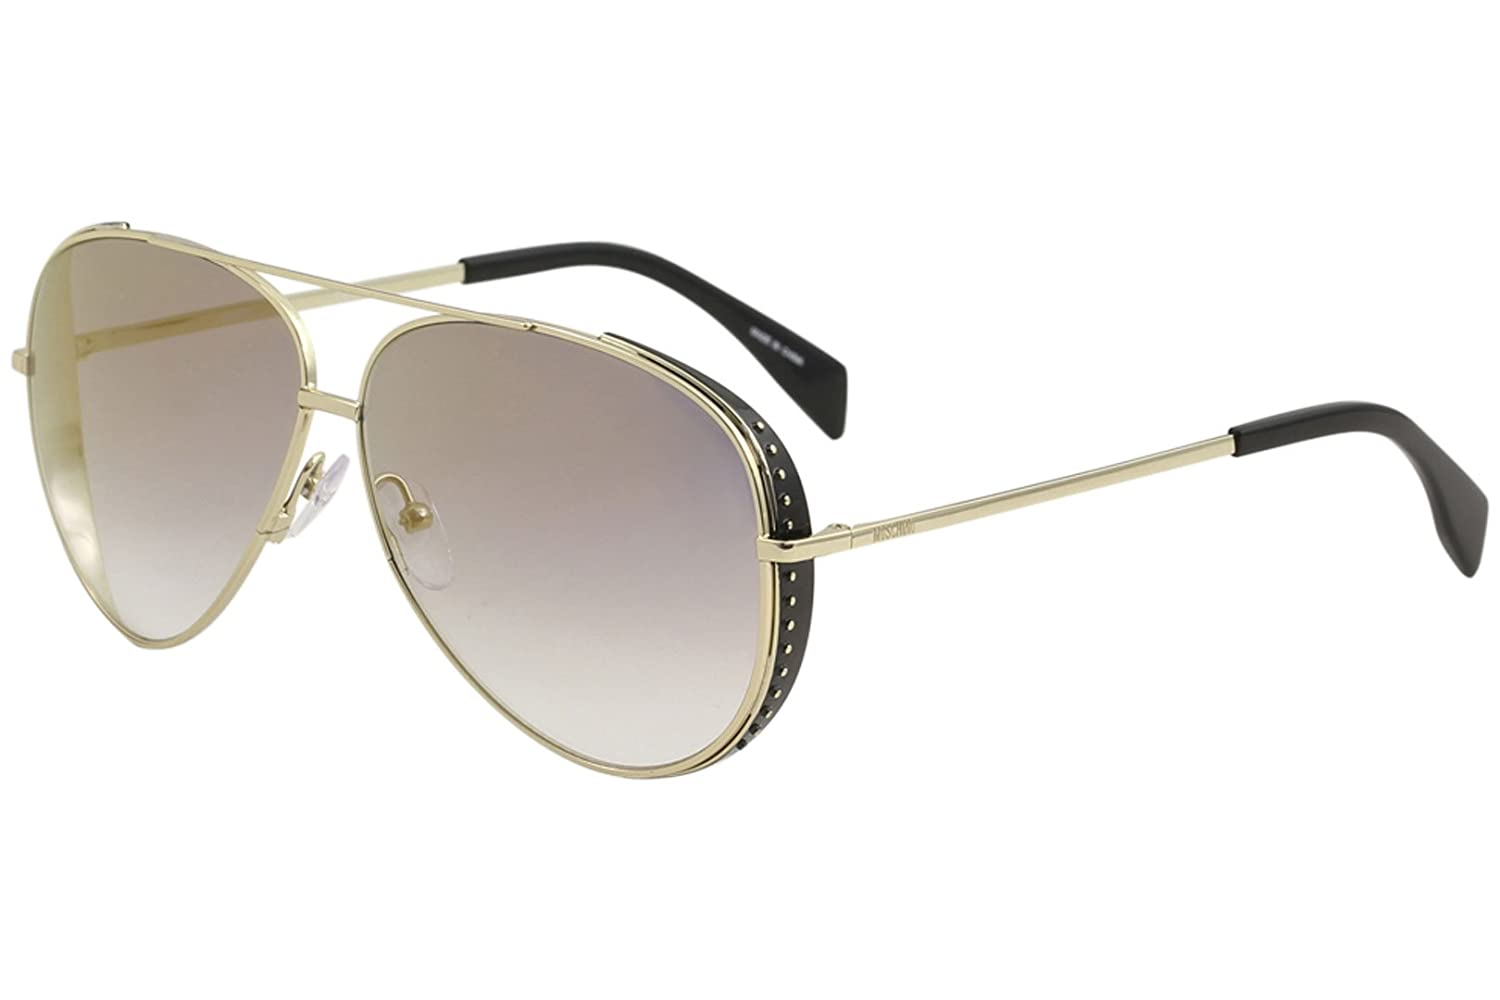 Gafas de Sol Moschino MOS007/S GOLD BLACK/GREY GOLD SHADED ...